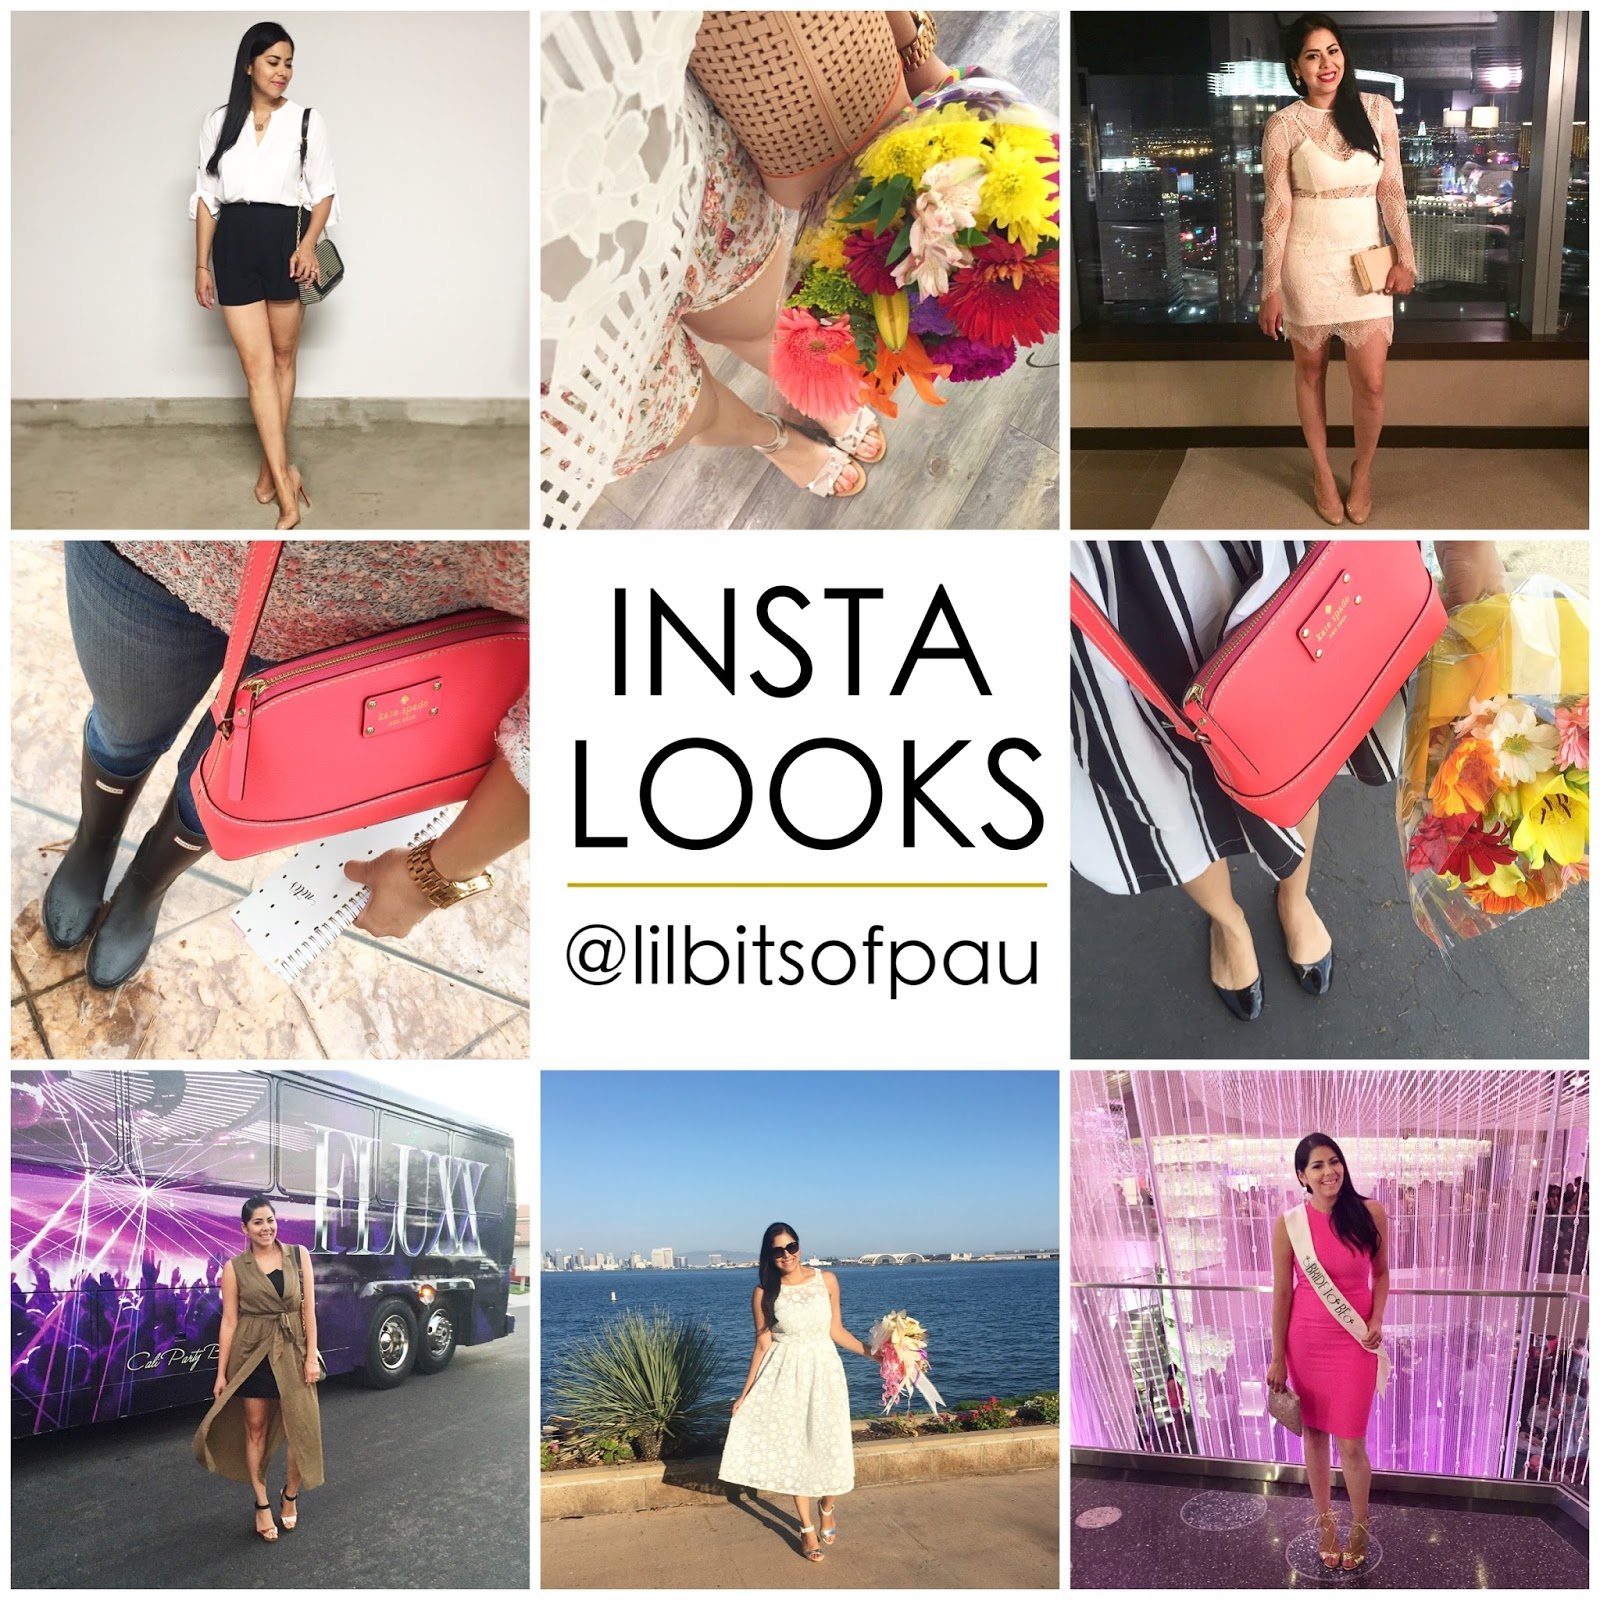 Instagram Looks, 2015 lookbook, instagramworthy looks